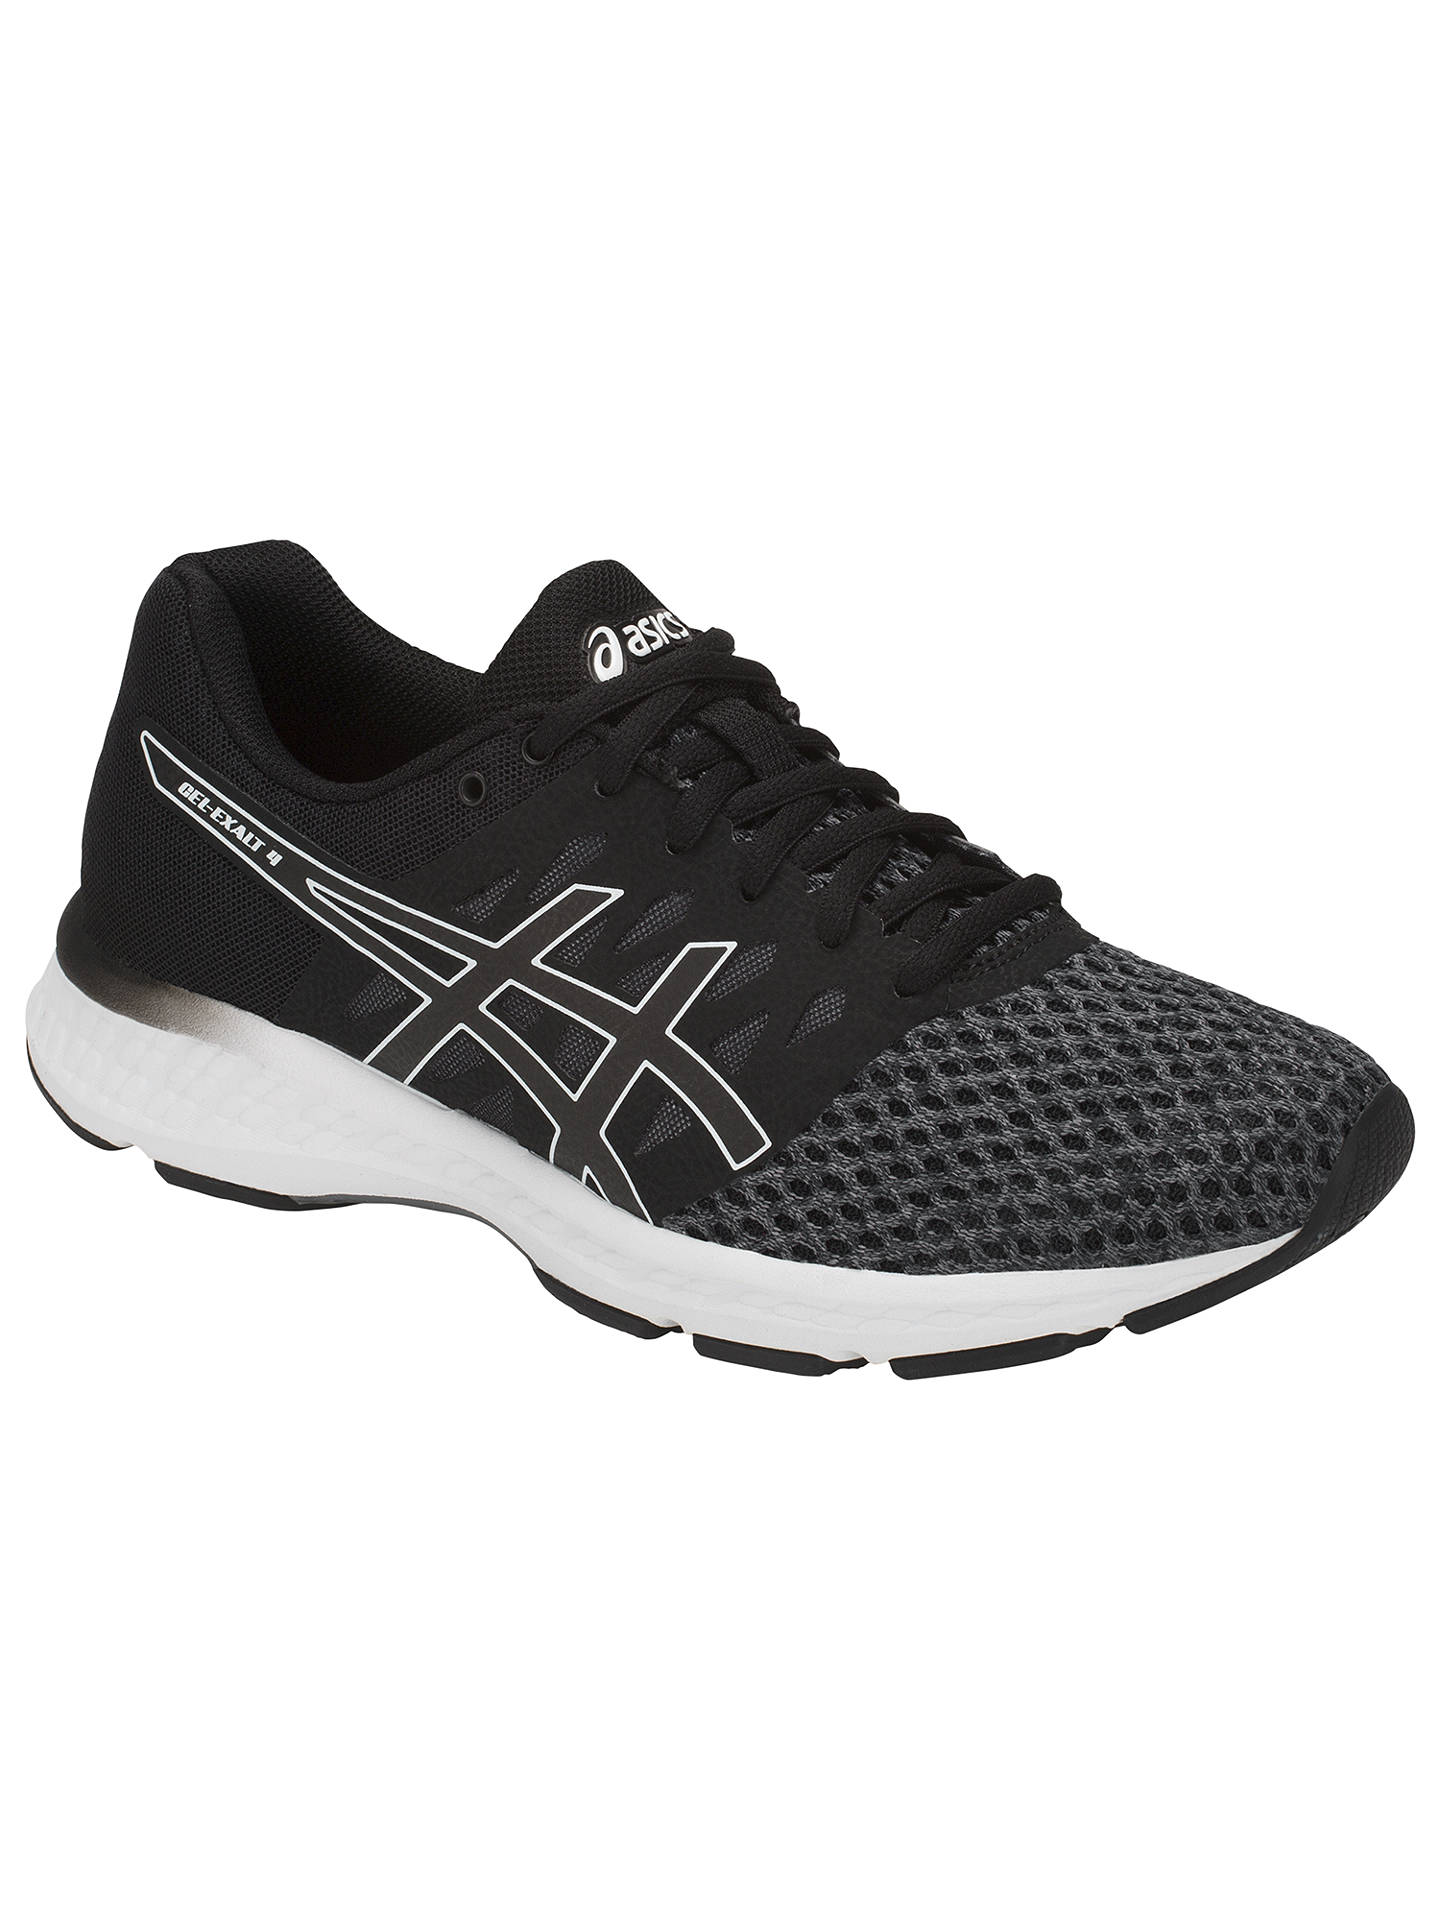 Buy ASICS GEL-Exalt 4 Women's Running Shoes, Carbon, 4 Online at johnlewis.com